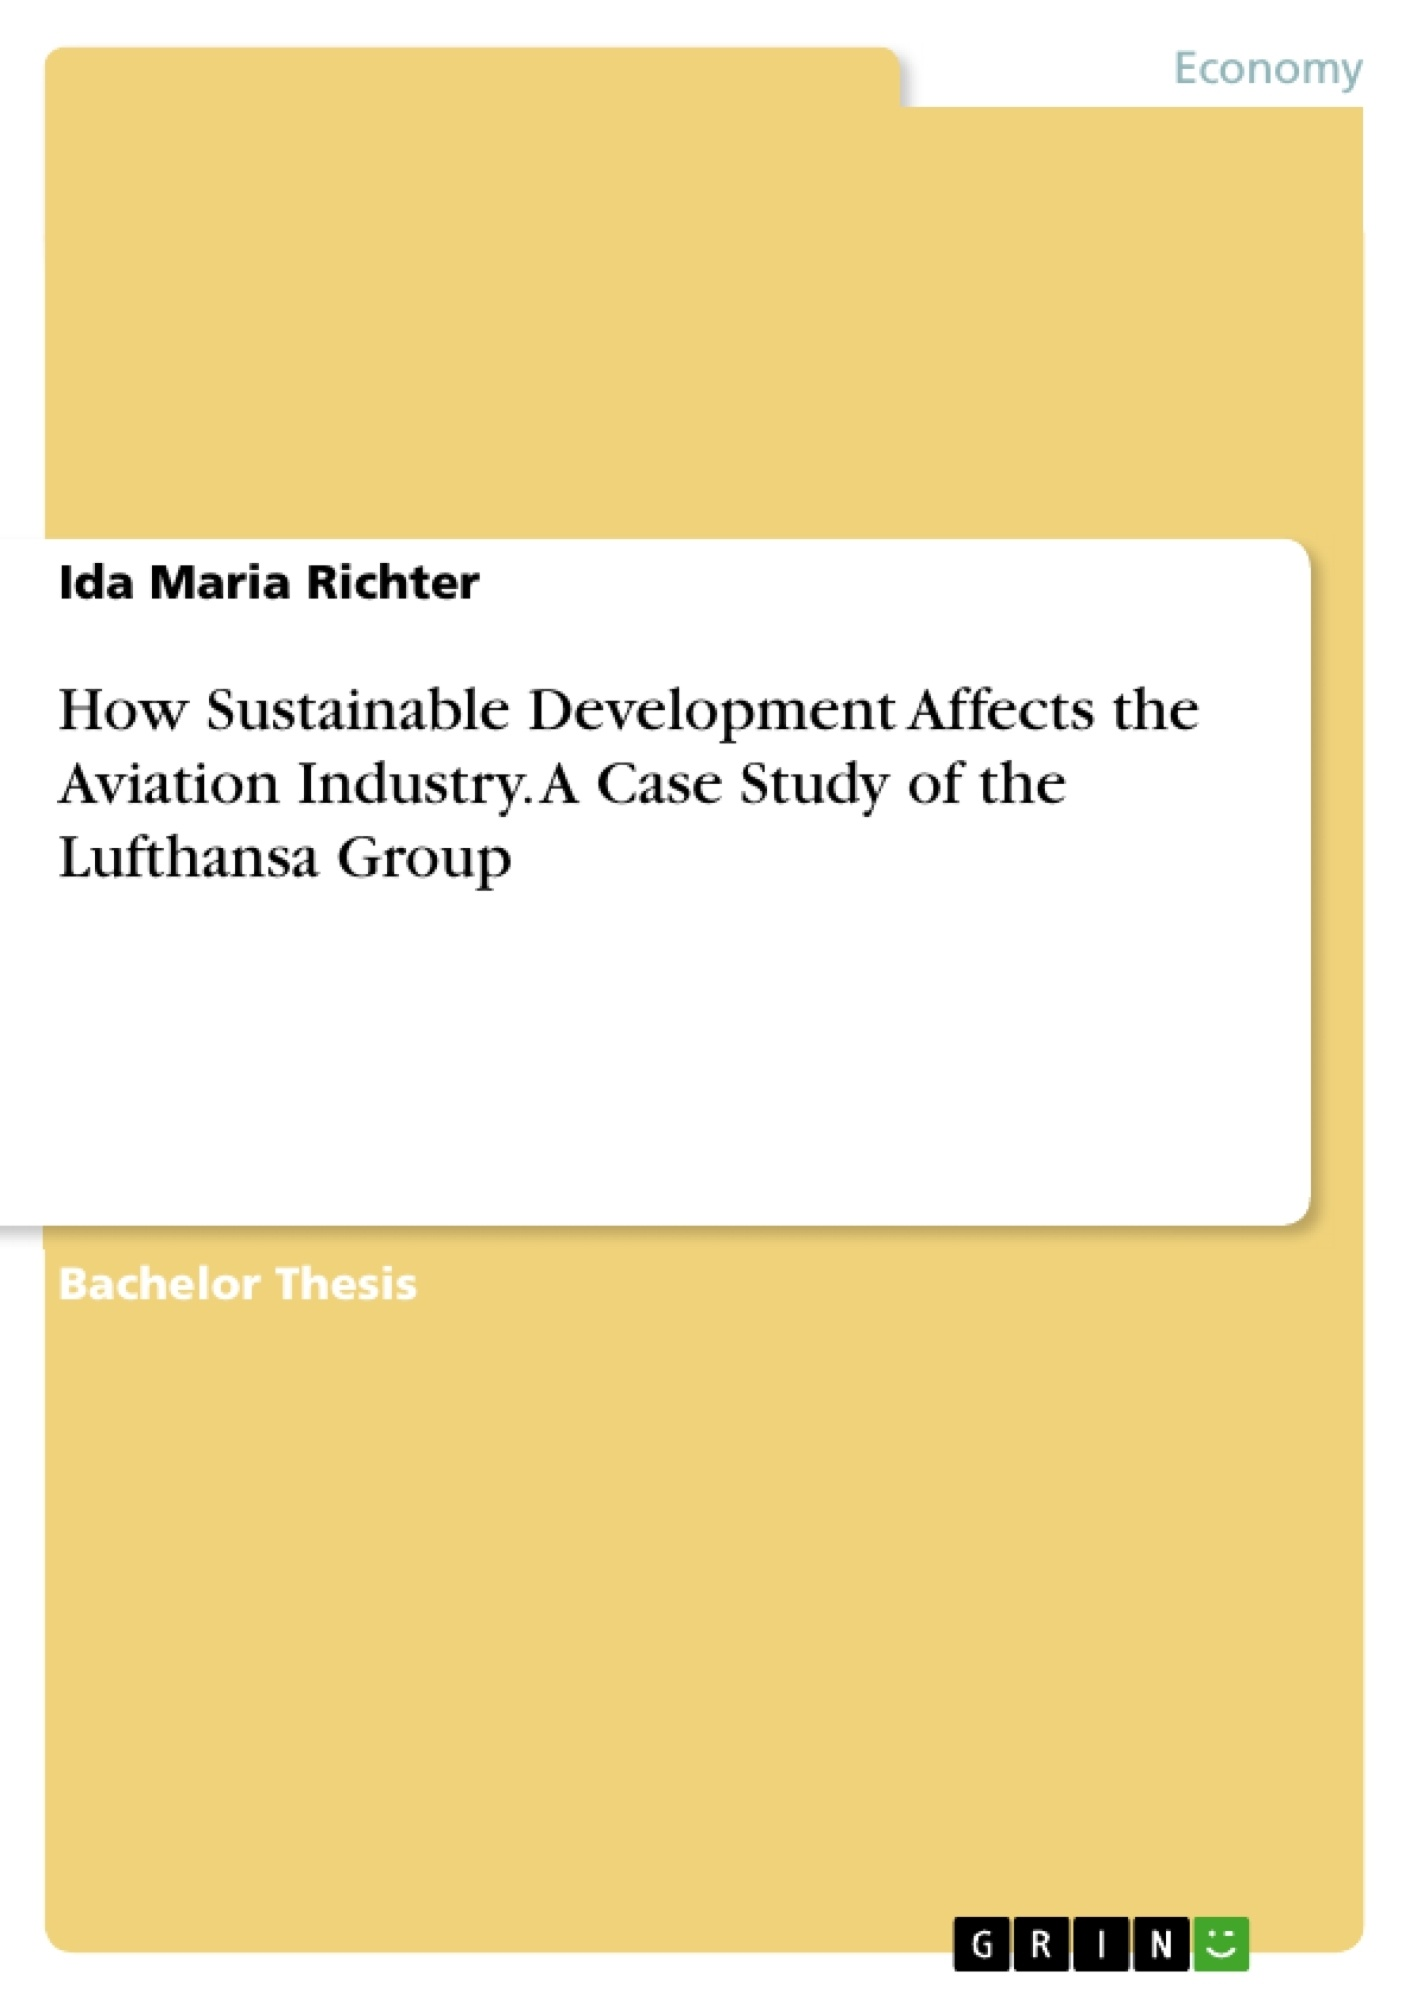 Titel: How Sustainable Development affects the Aviation Industry. A Case Study of the Lufthansa Group